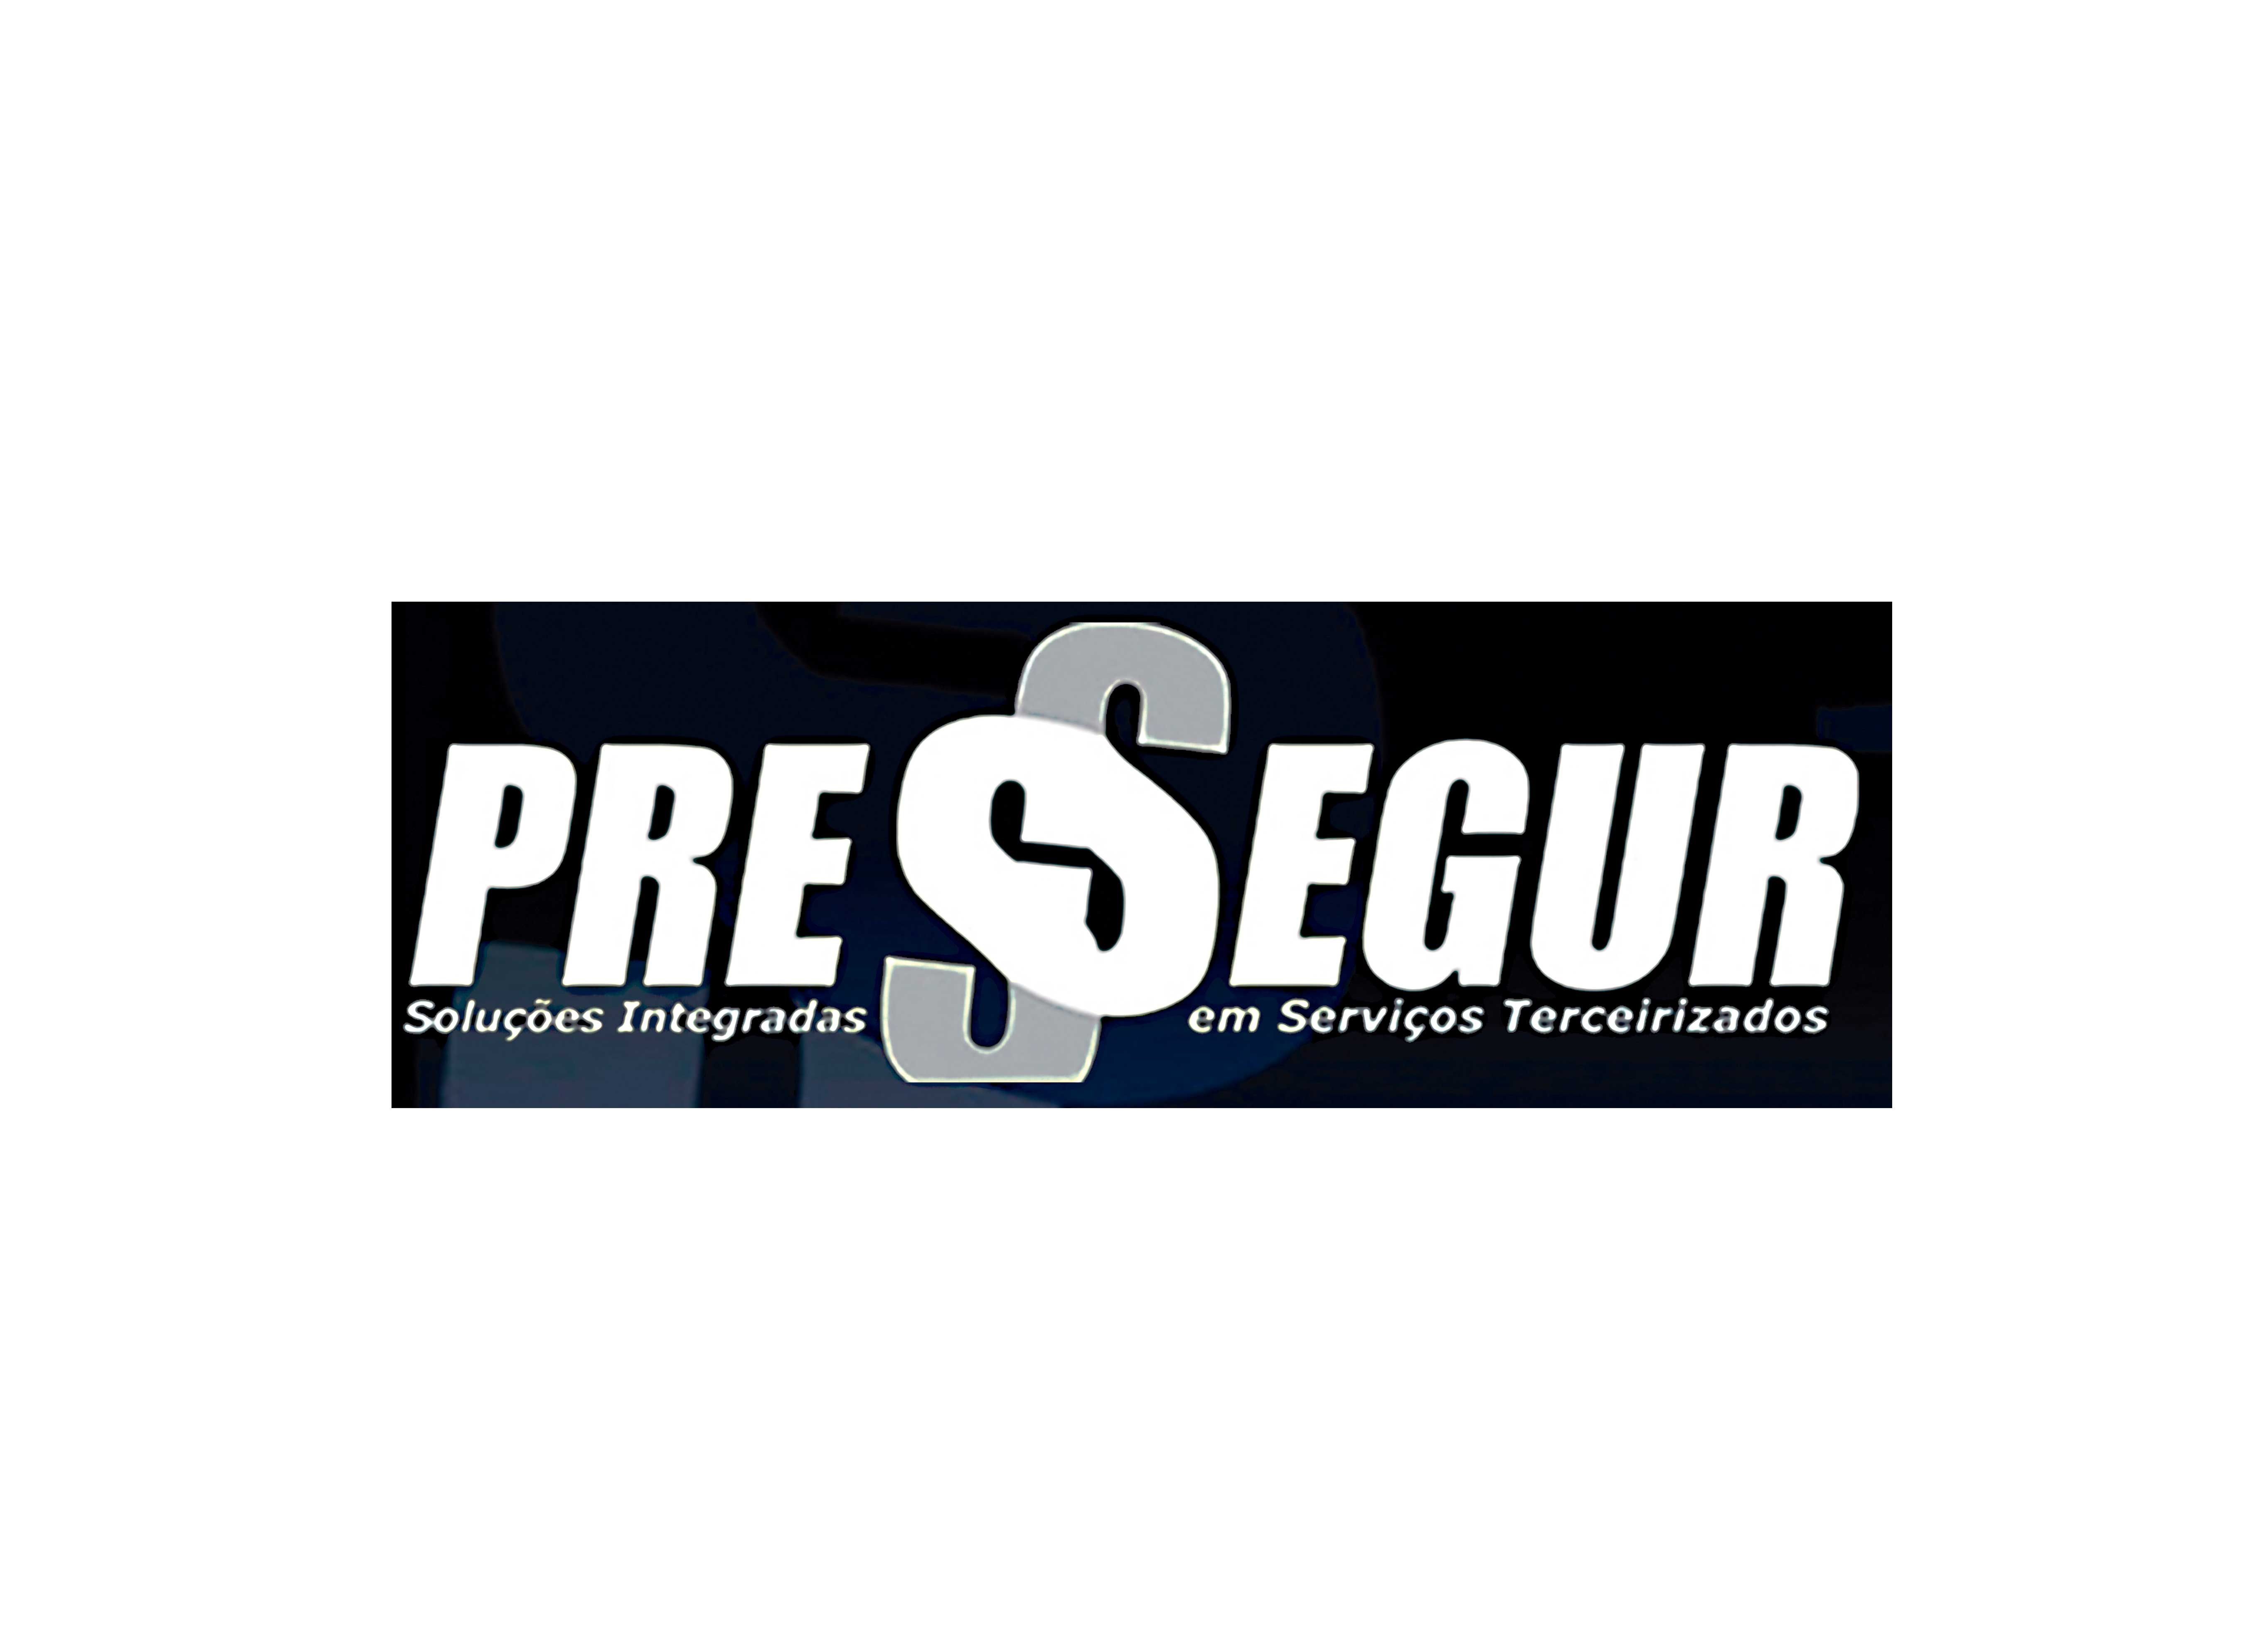 pressegur-drc-marketingdigital